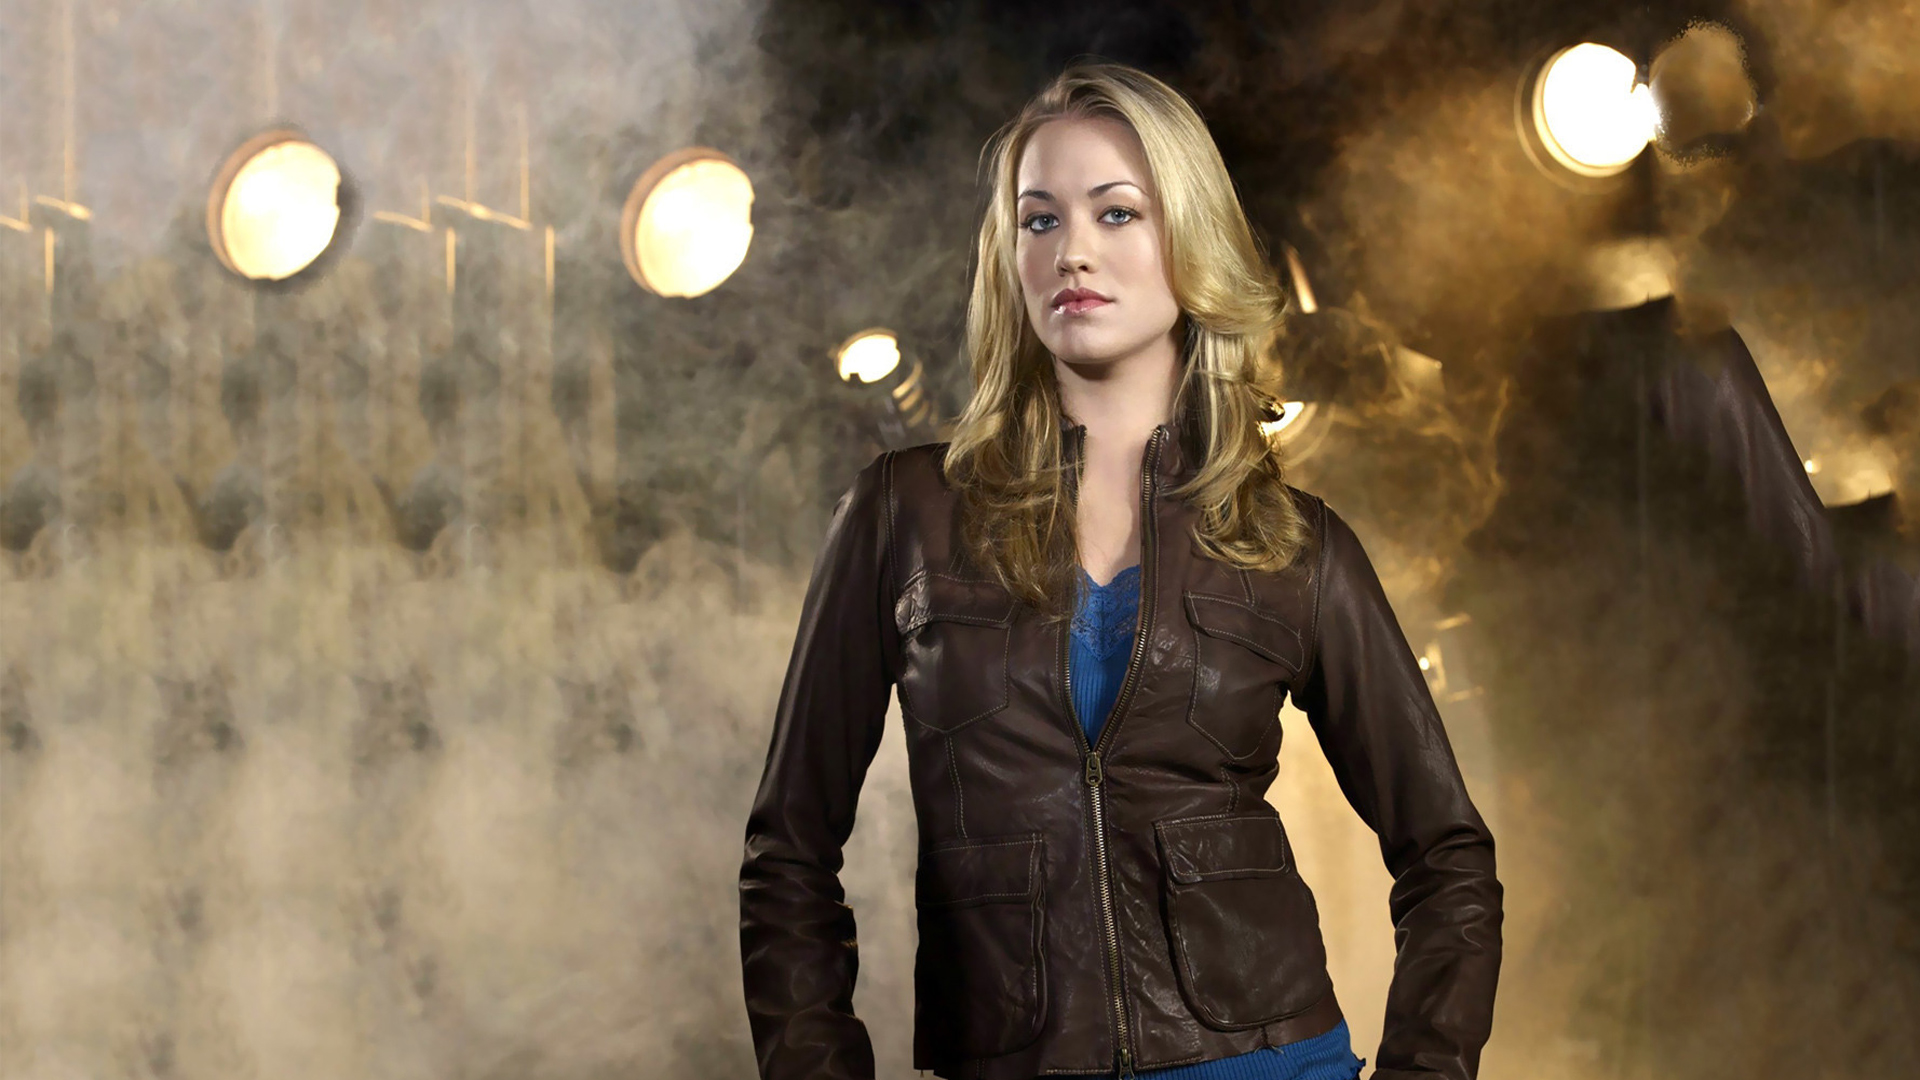 HD Yvonne Strahovski Wallpapers HdCoolWallpapersCom 1920x1080